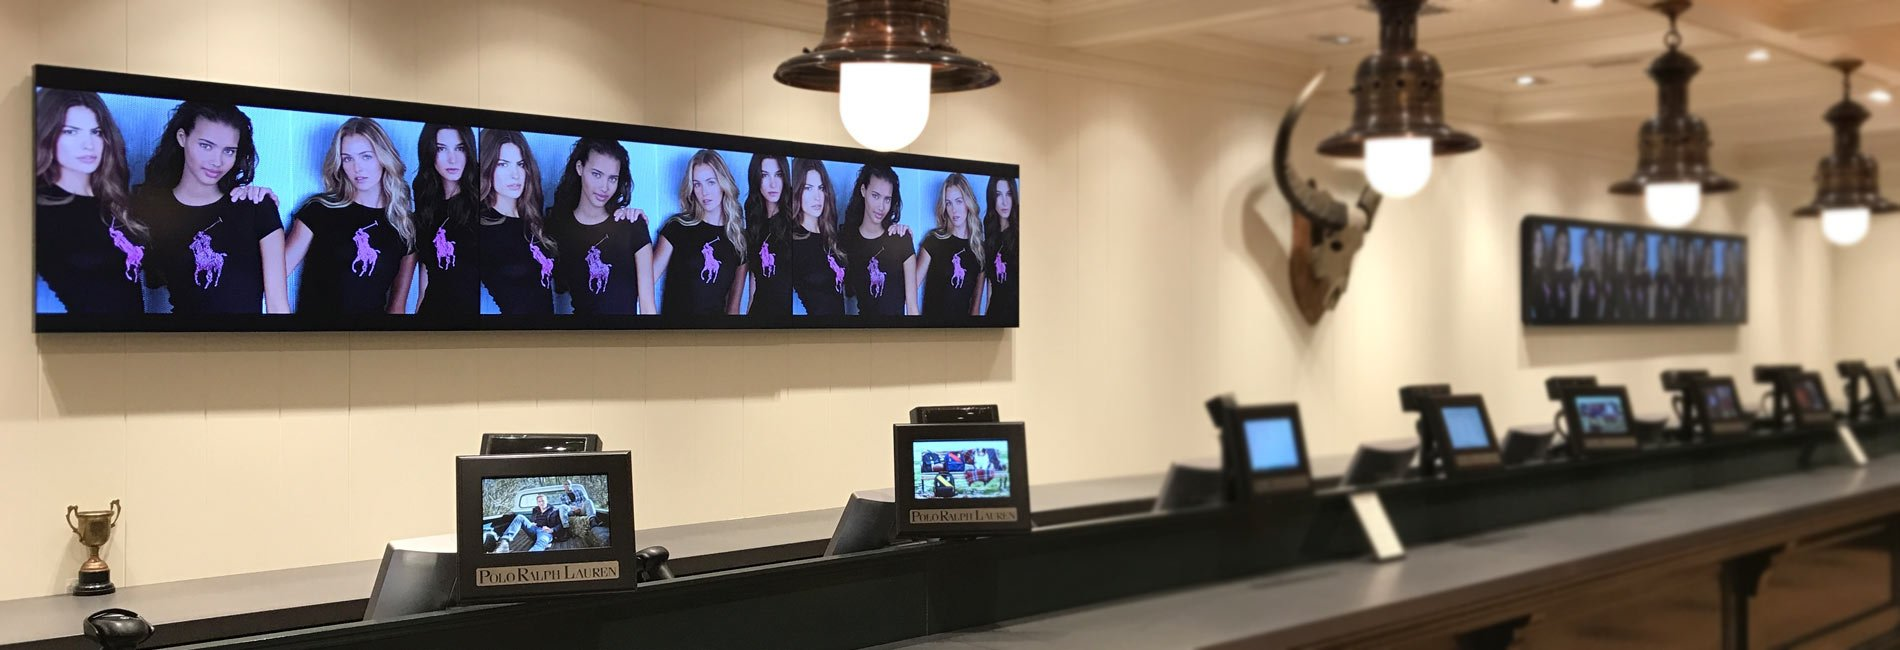 multiple-video-walls-in-3x1-configuration-for-retail-store-by-aprios-av